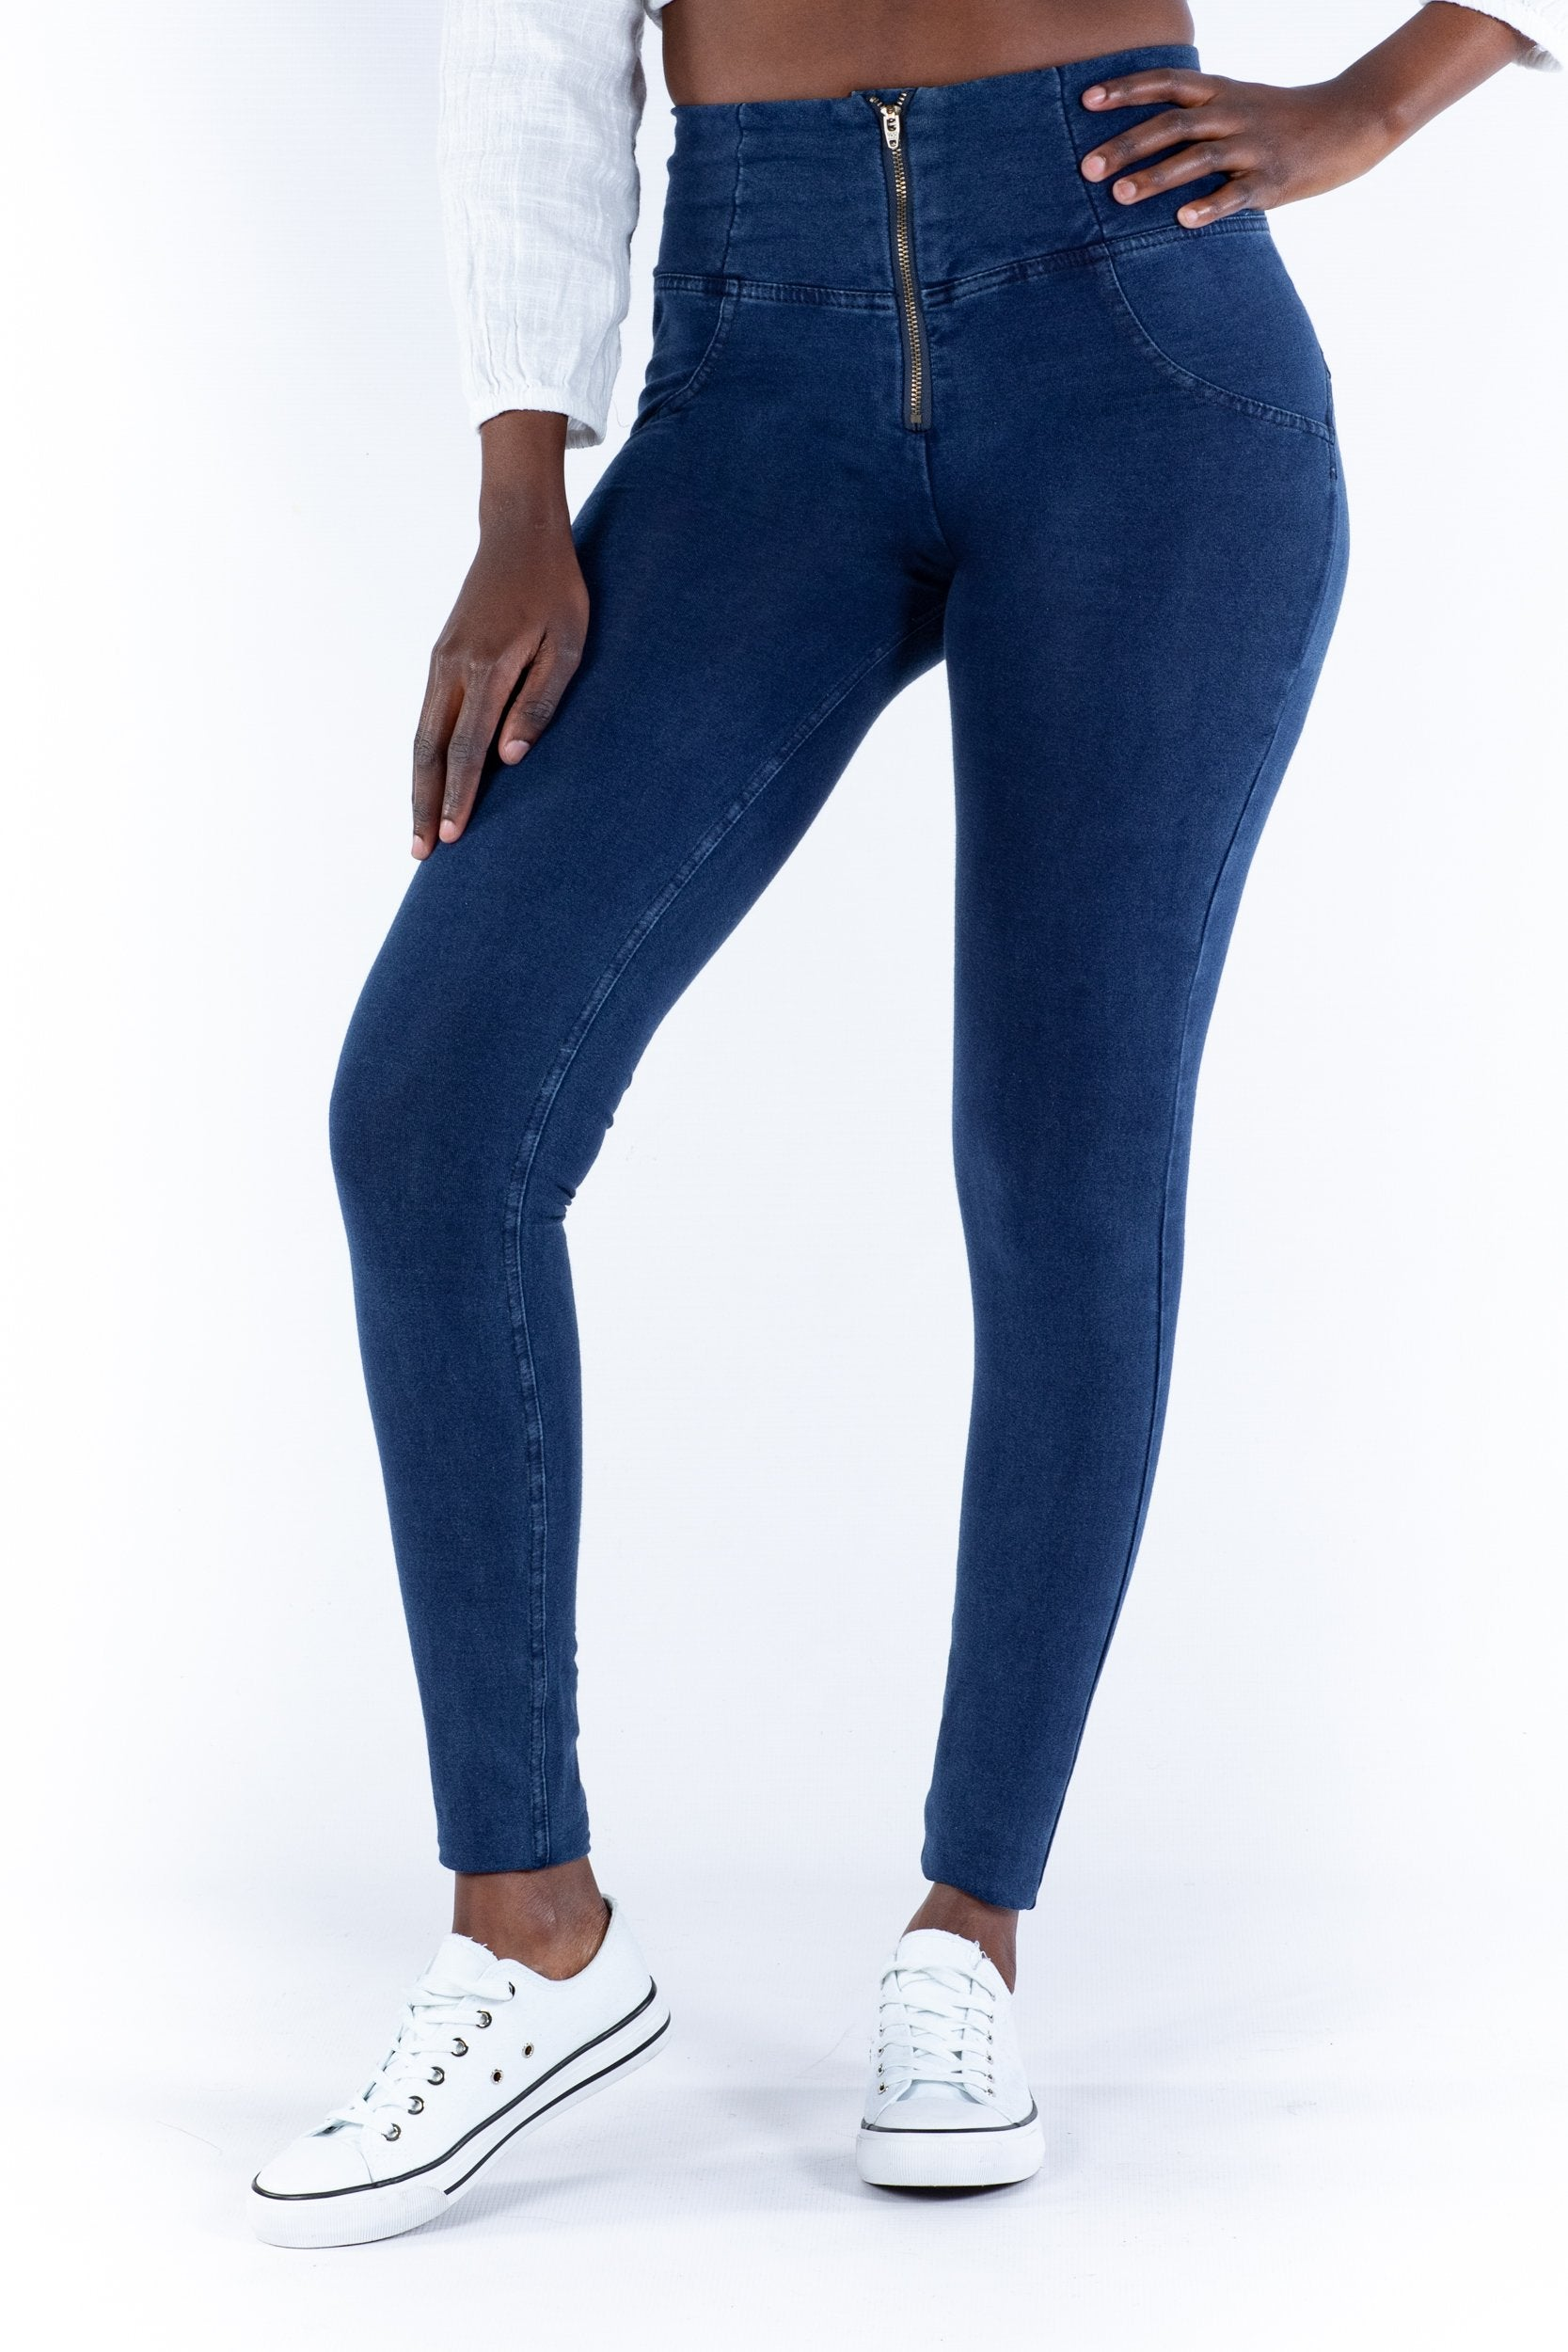 High waist Butt lifting Jeggings - Dark Blue